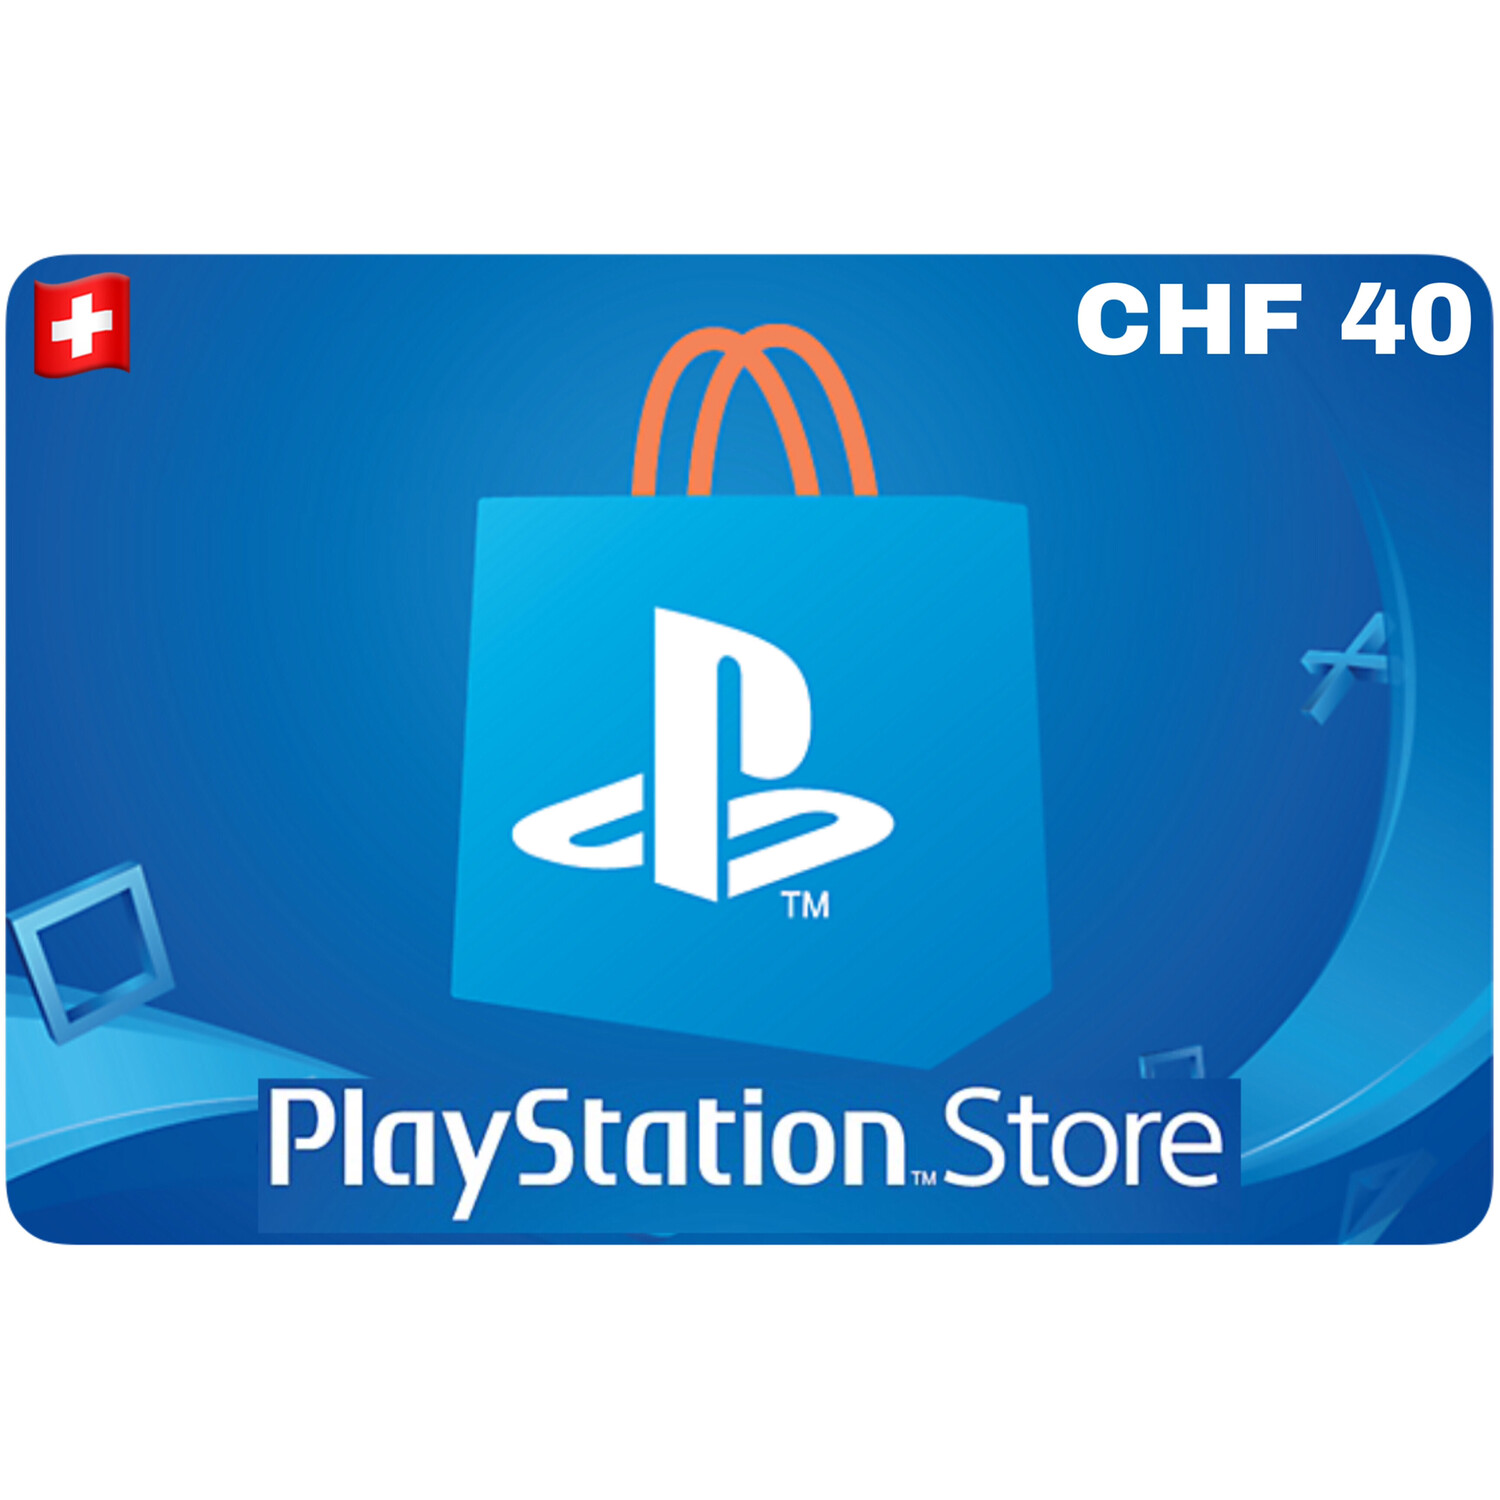 Playstation Store Gift Card Switzerland CHF 40